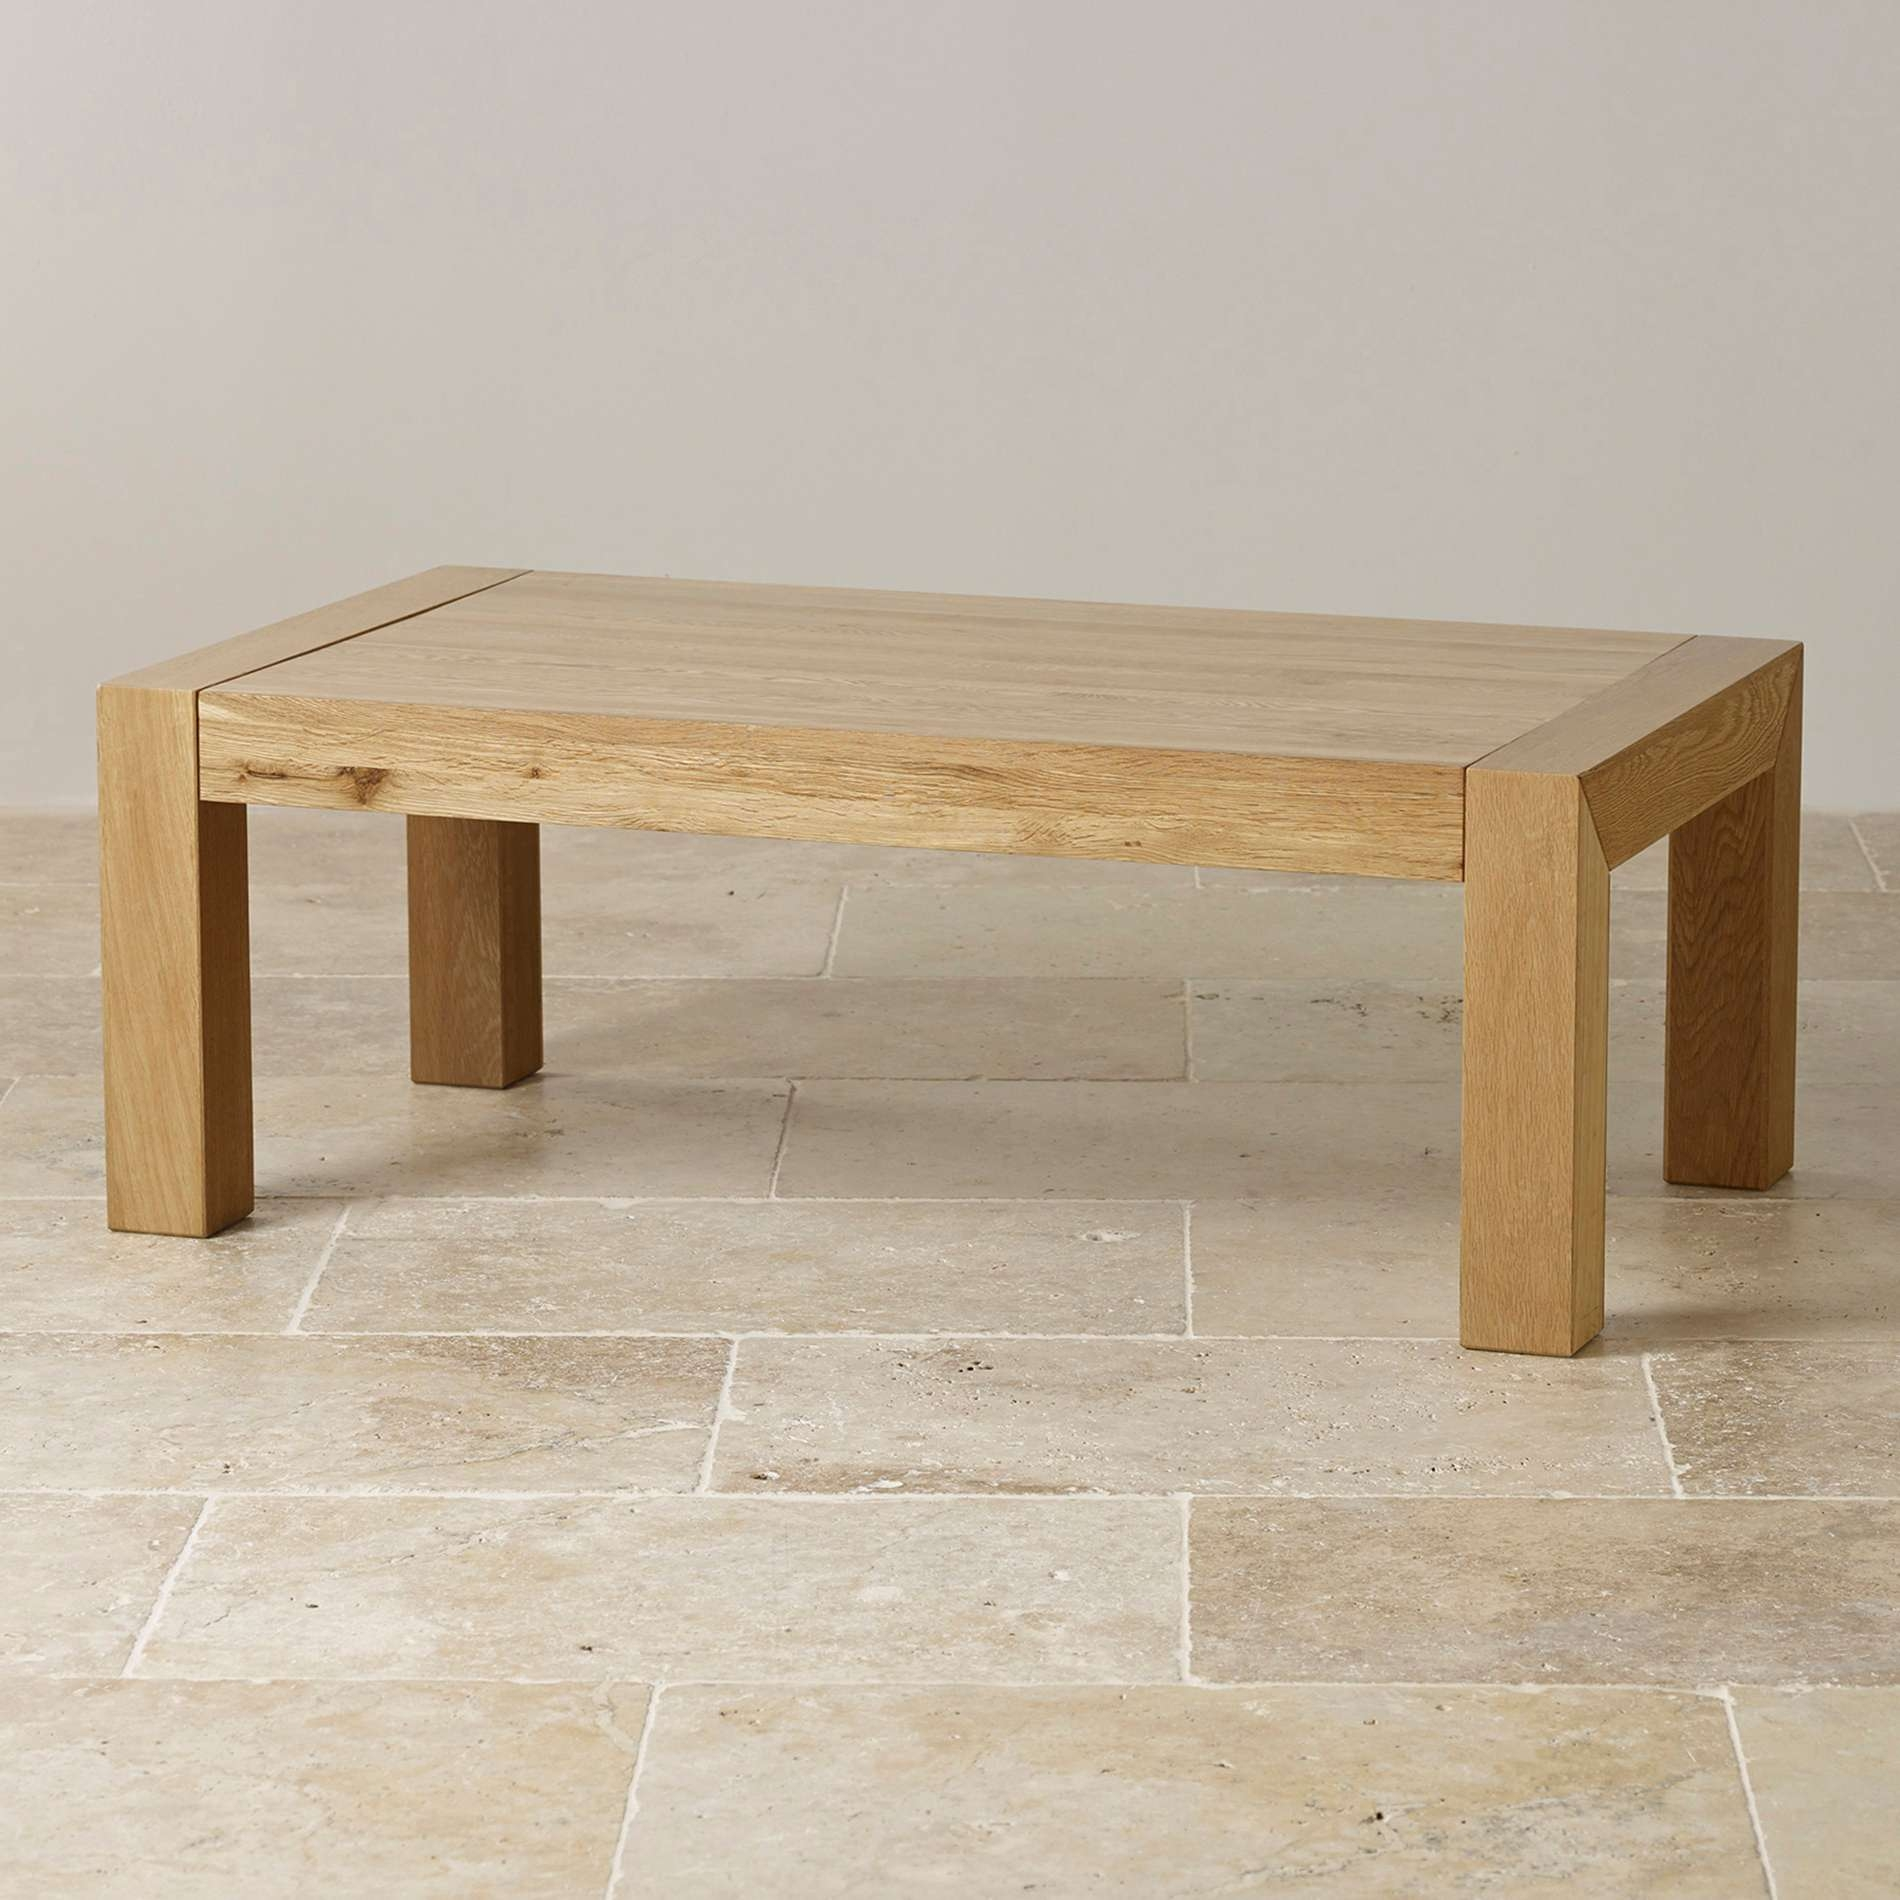 House Furniture Ideas With Latest Low Oak Coffee Tables (Gallery 2 of 20)